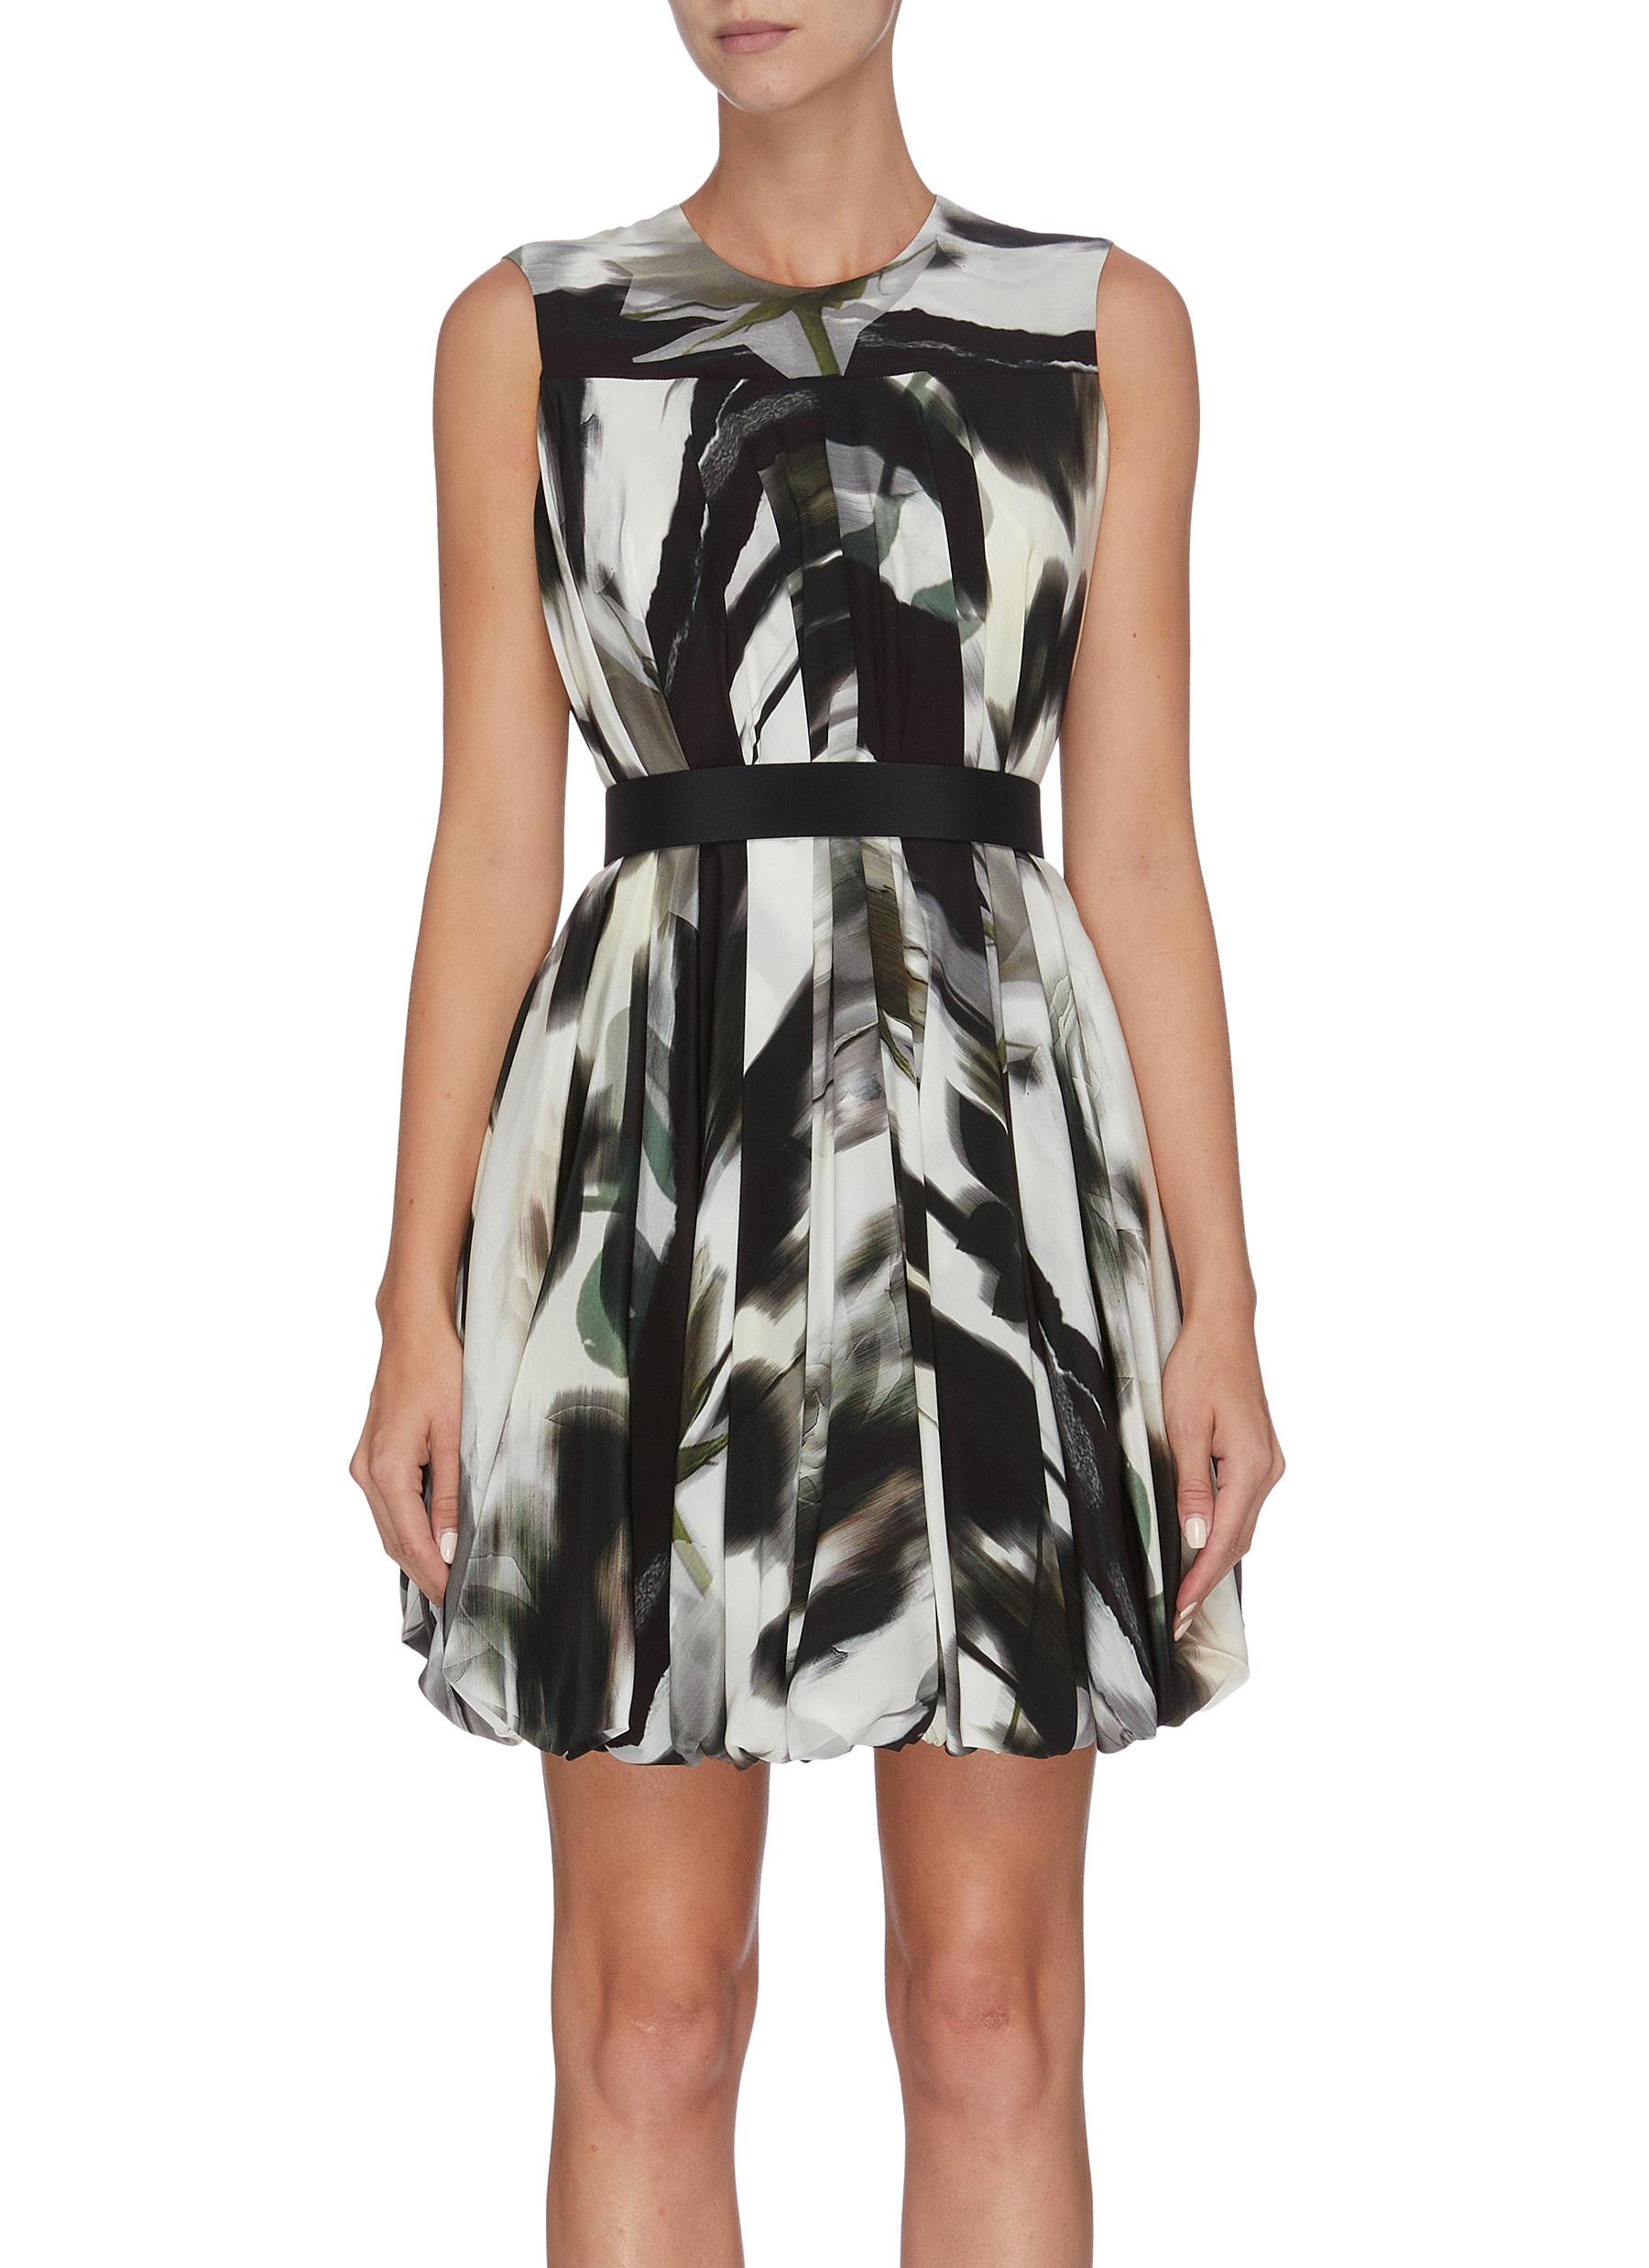 Belted graphic print pleated sleevless dress by Alexander Mcqueen